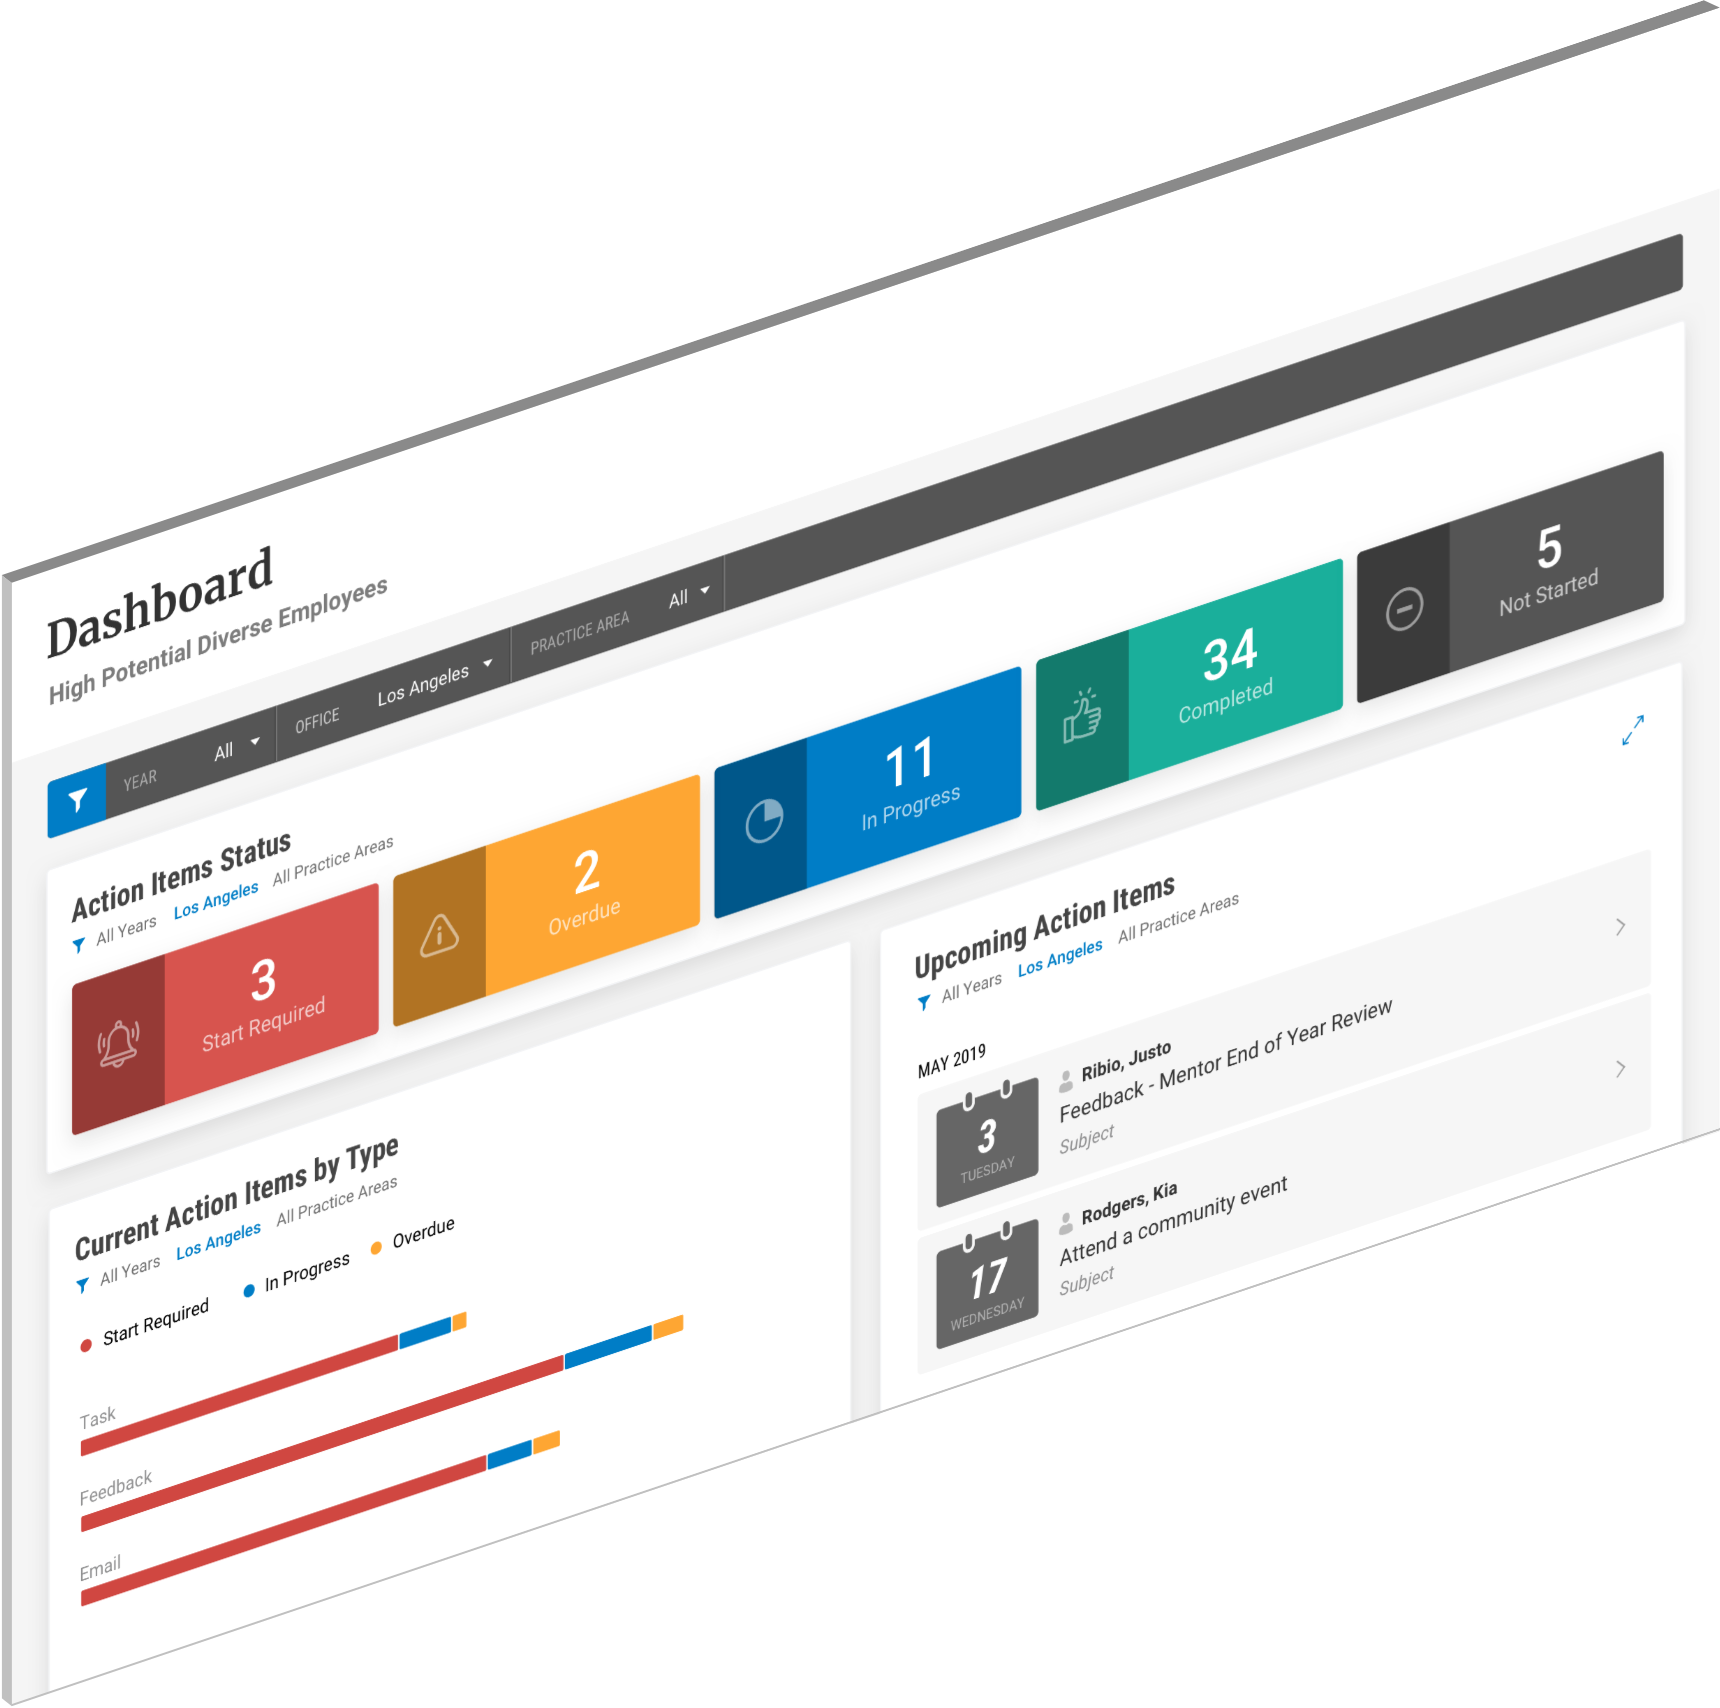 Dashboard view of all integration activities organization-wide